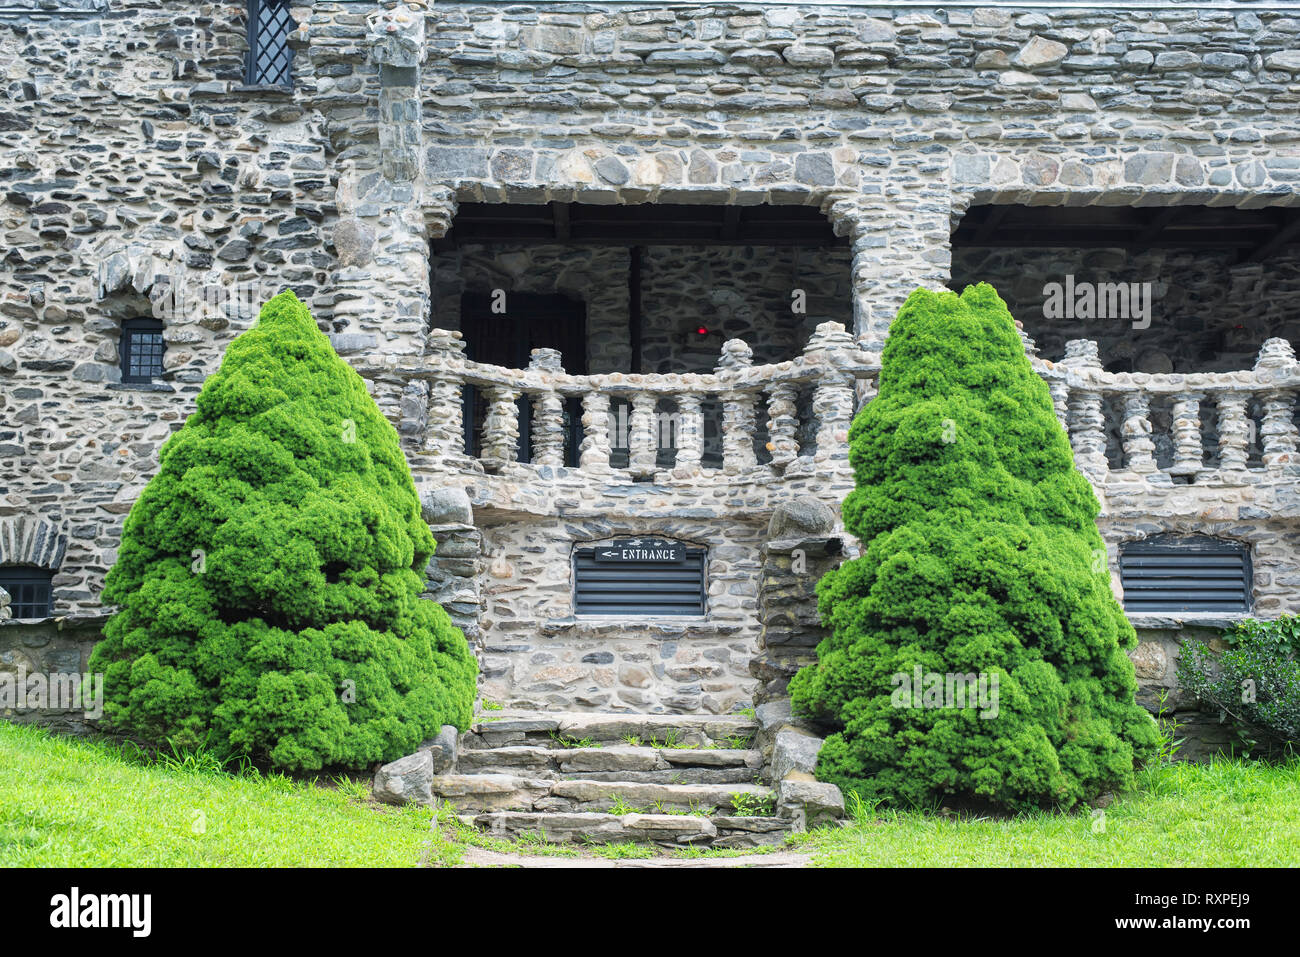 The landmark Gillette Castle exterior and lawn in East Haddam Connecticut. - Stock Image